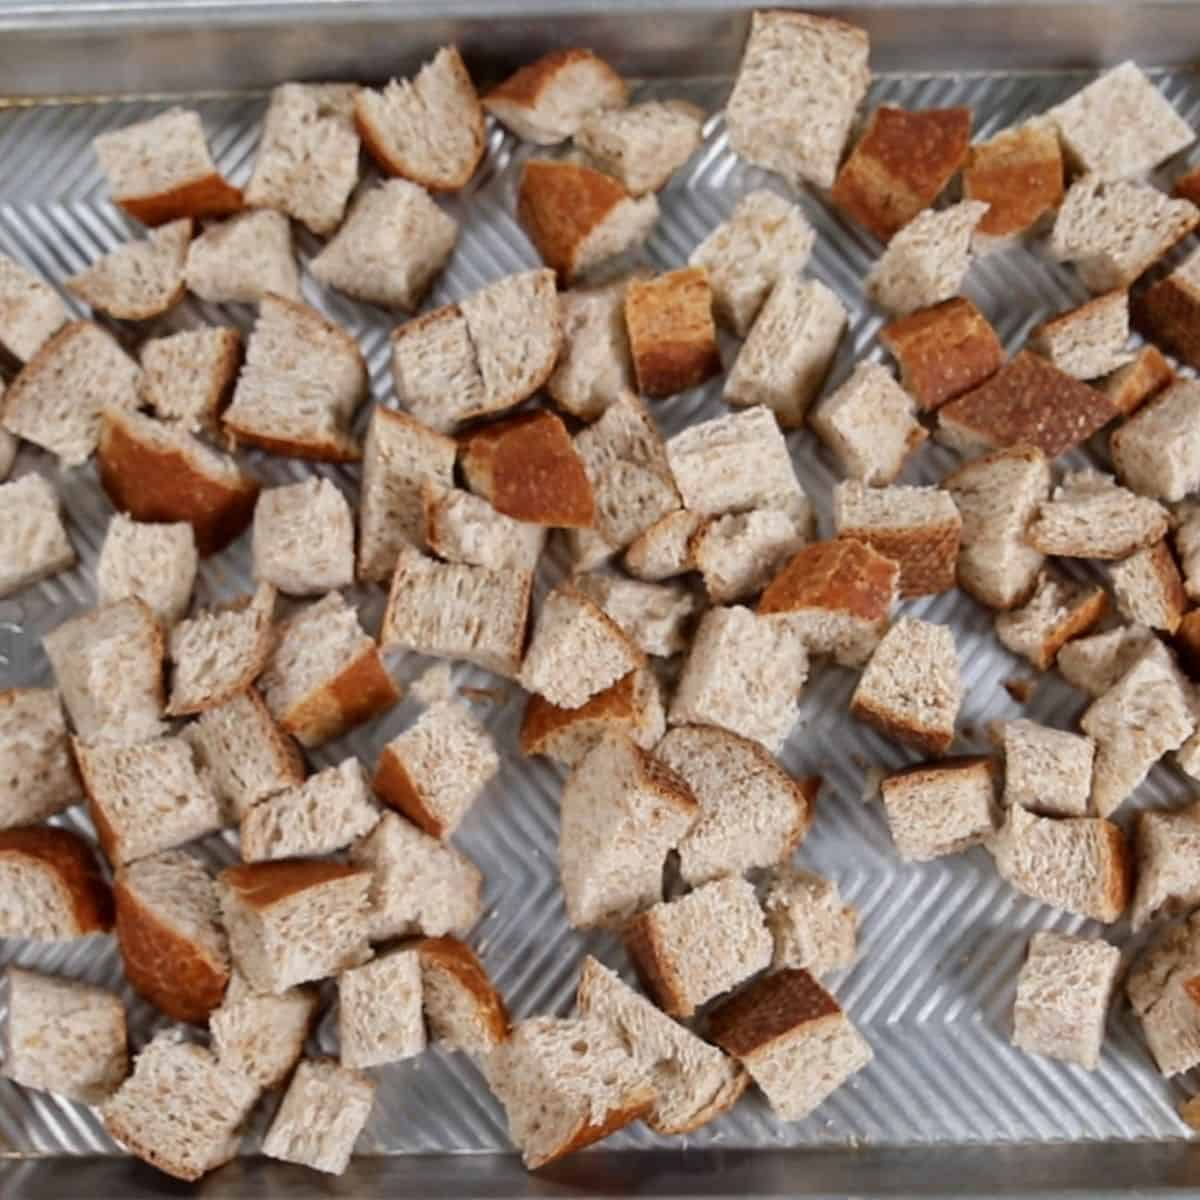 Cubed wheat bread on sheet pan.